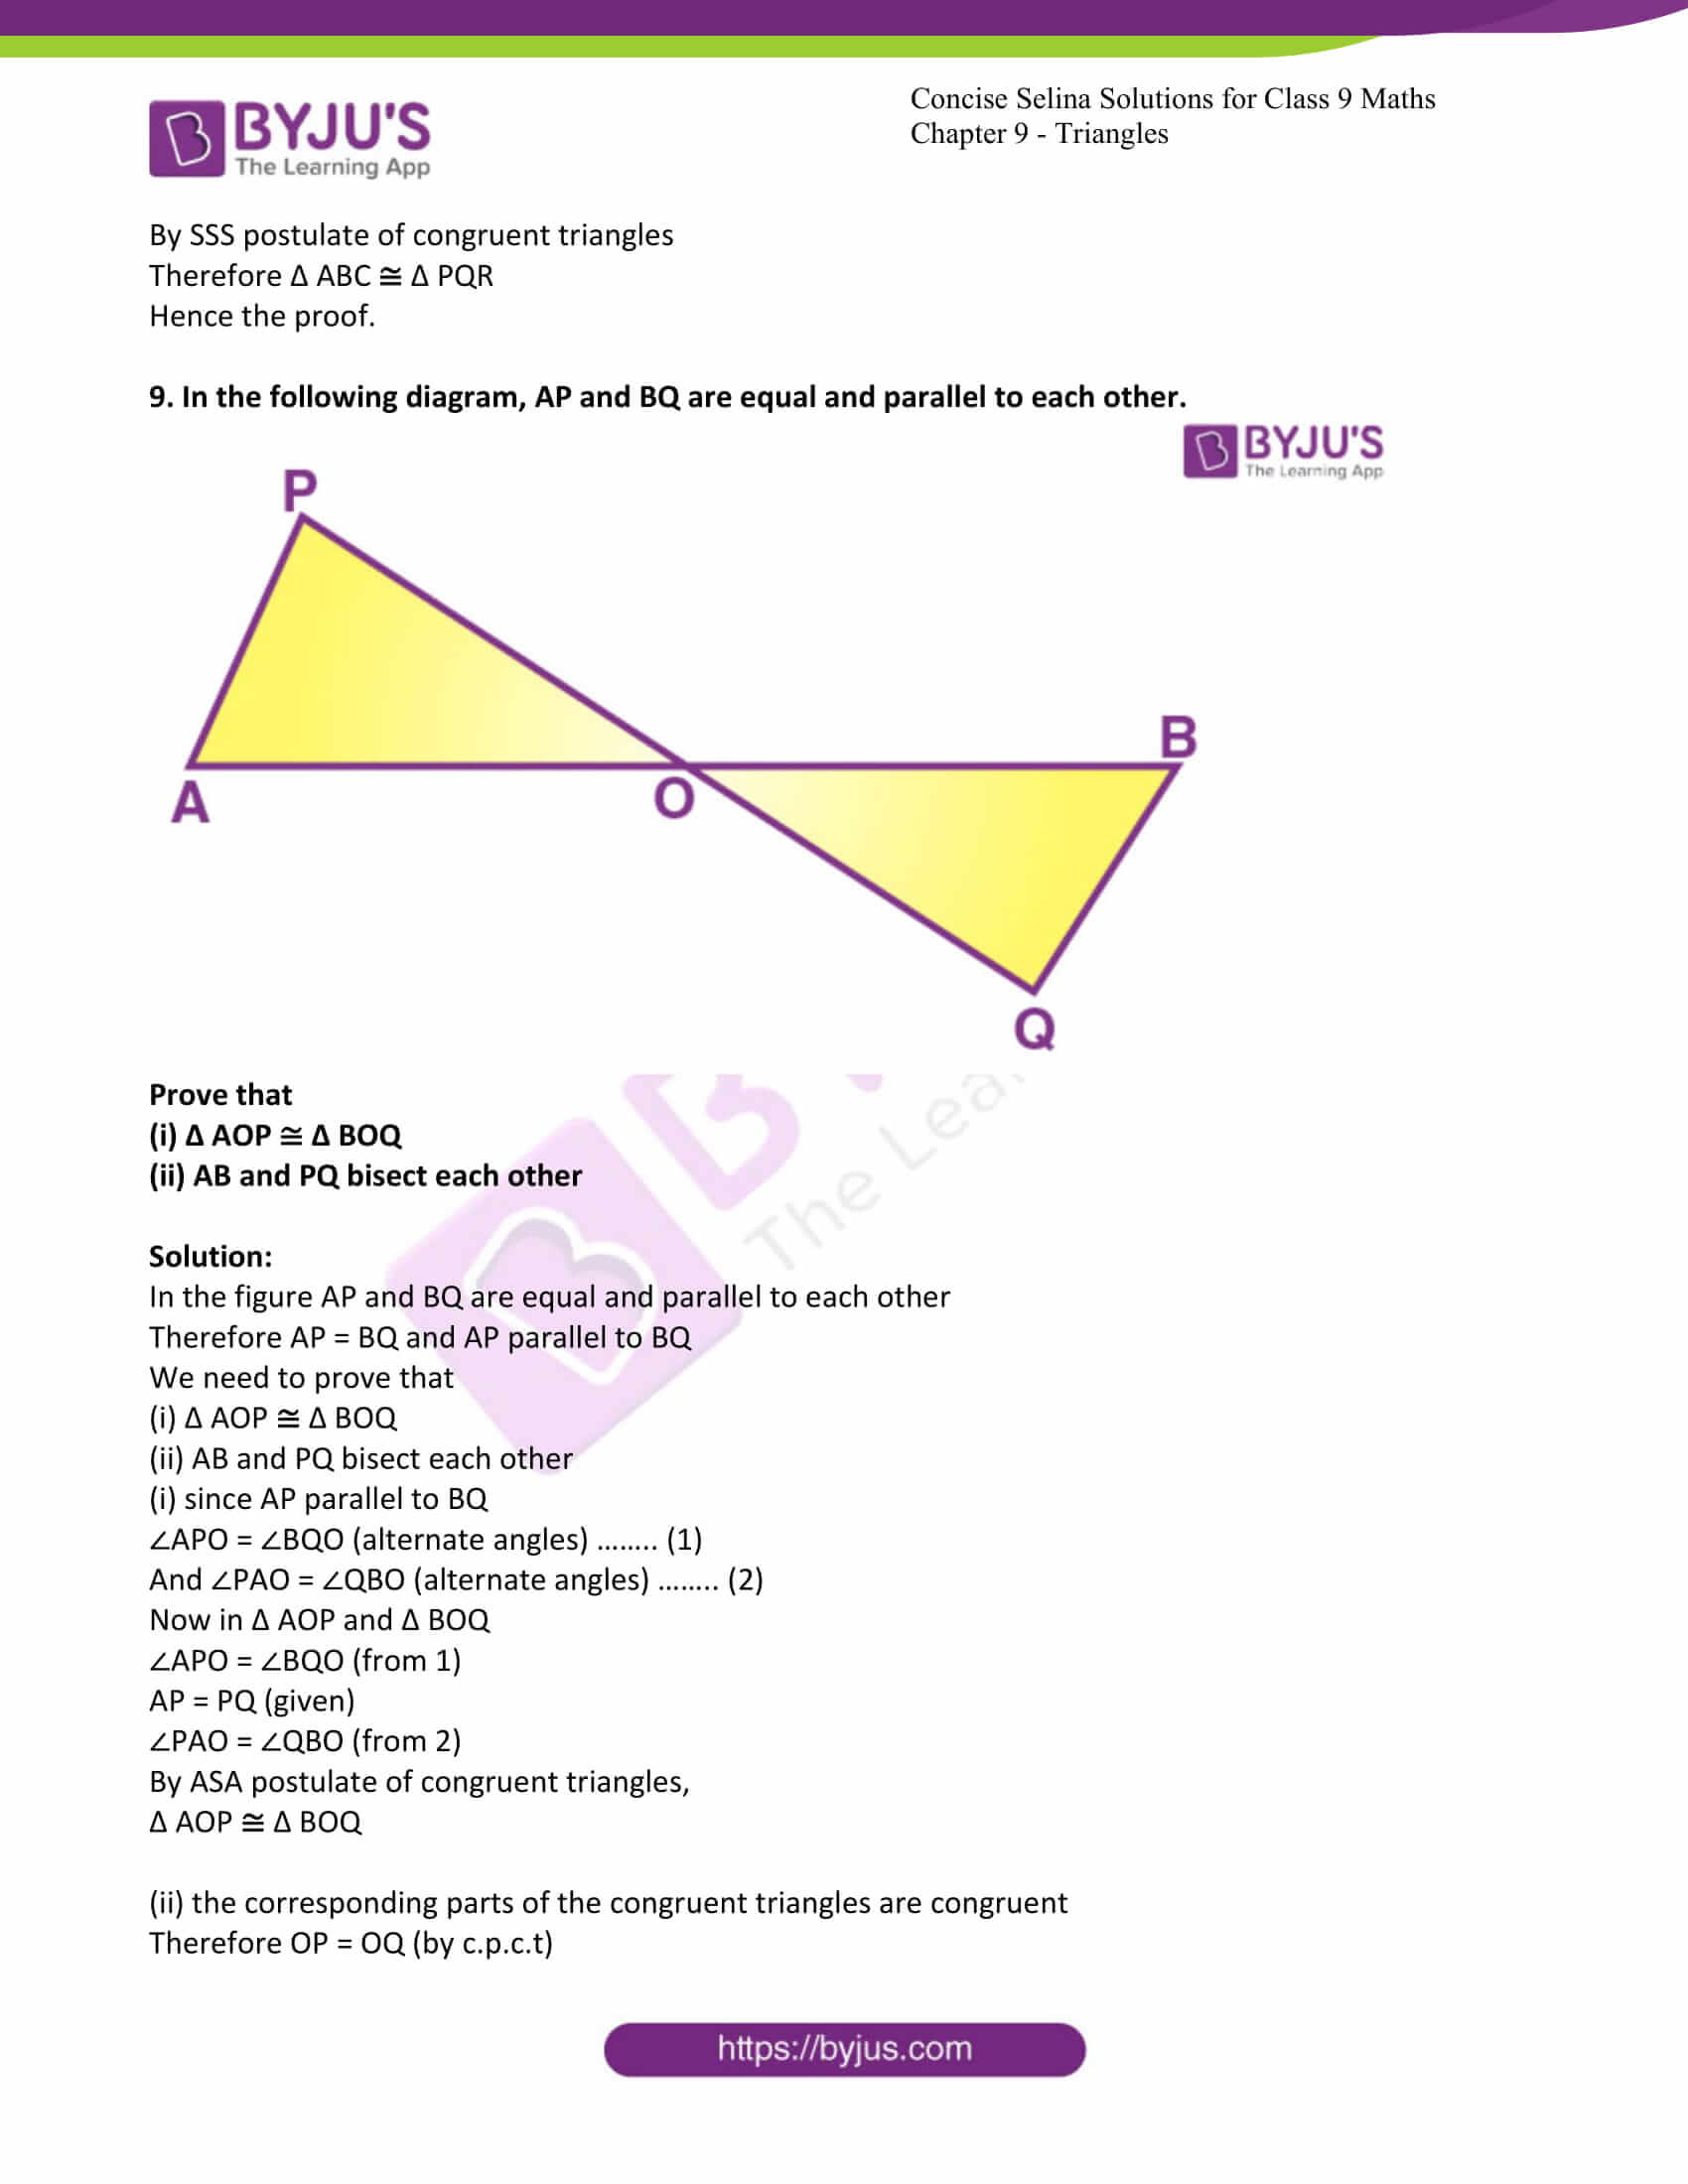 icse class 9 maths may10 selina solutions chapter 9 triangles 29